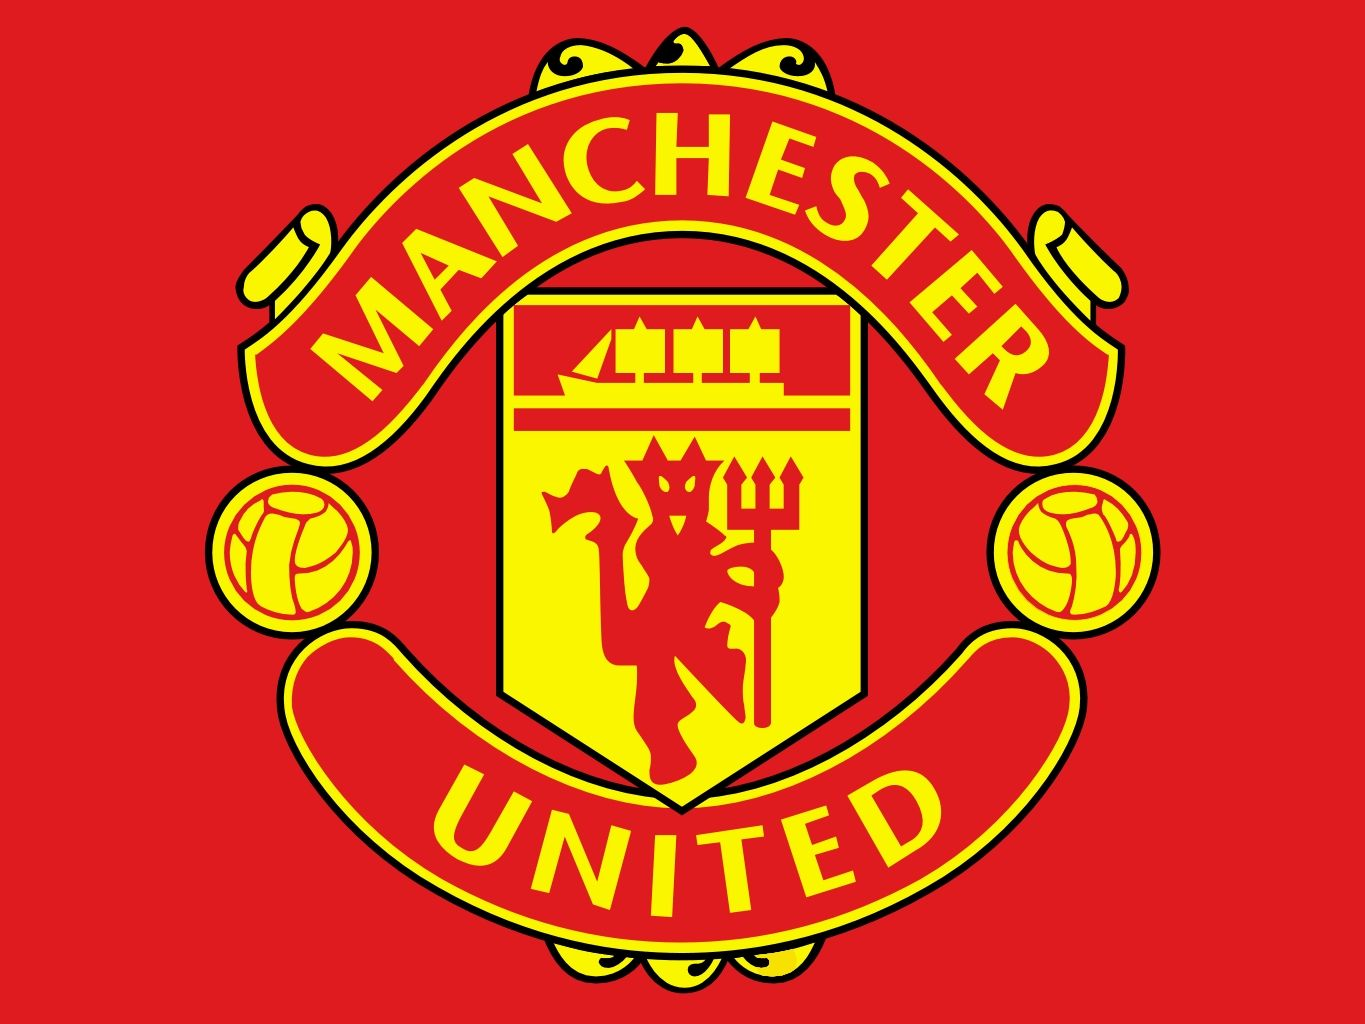 Color of the Manchester United Logo.